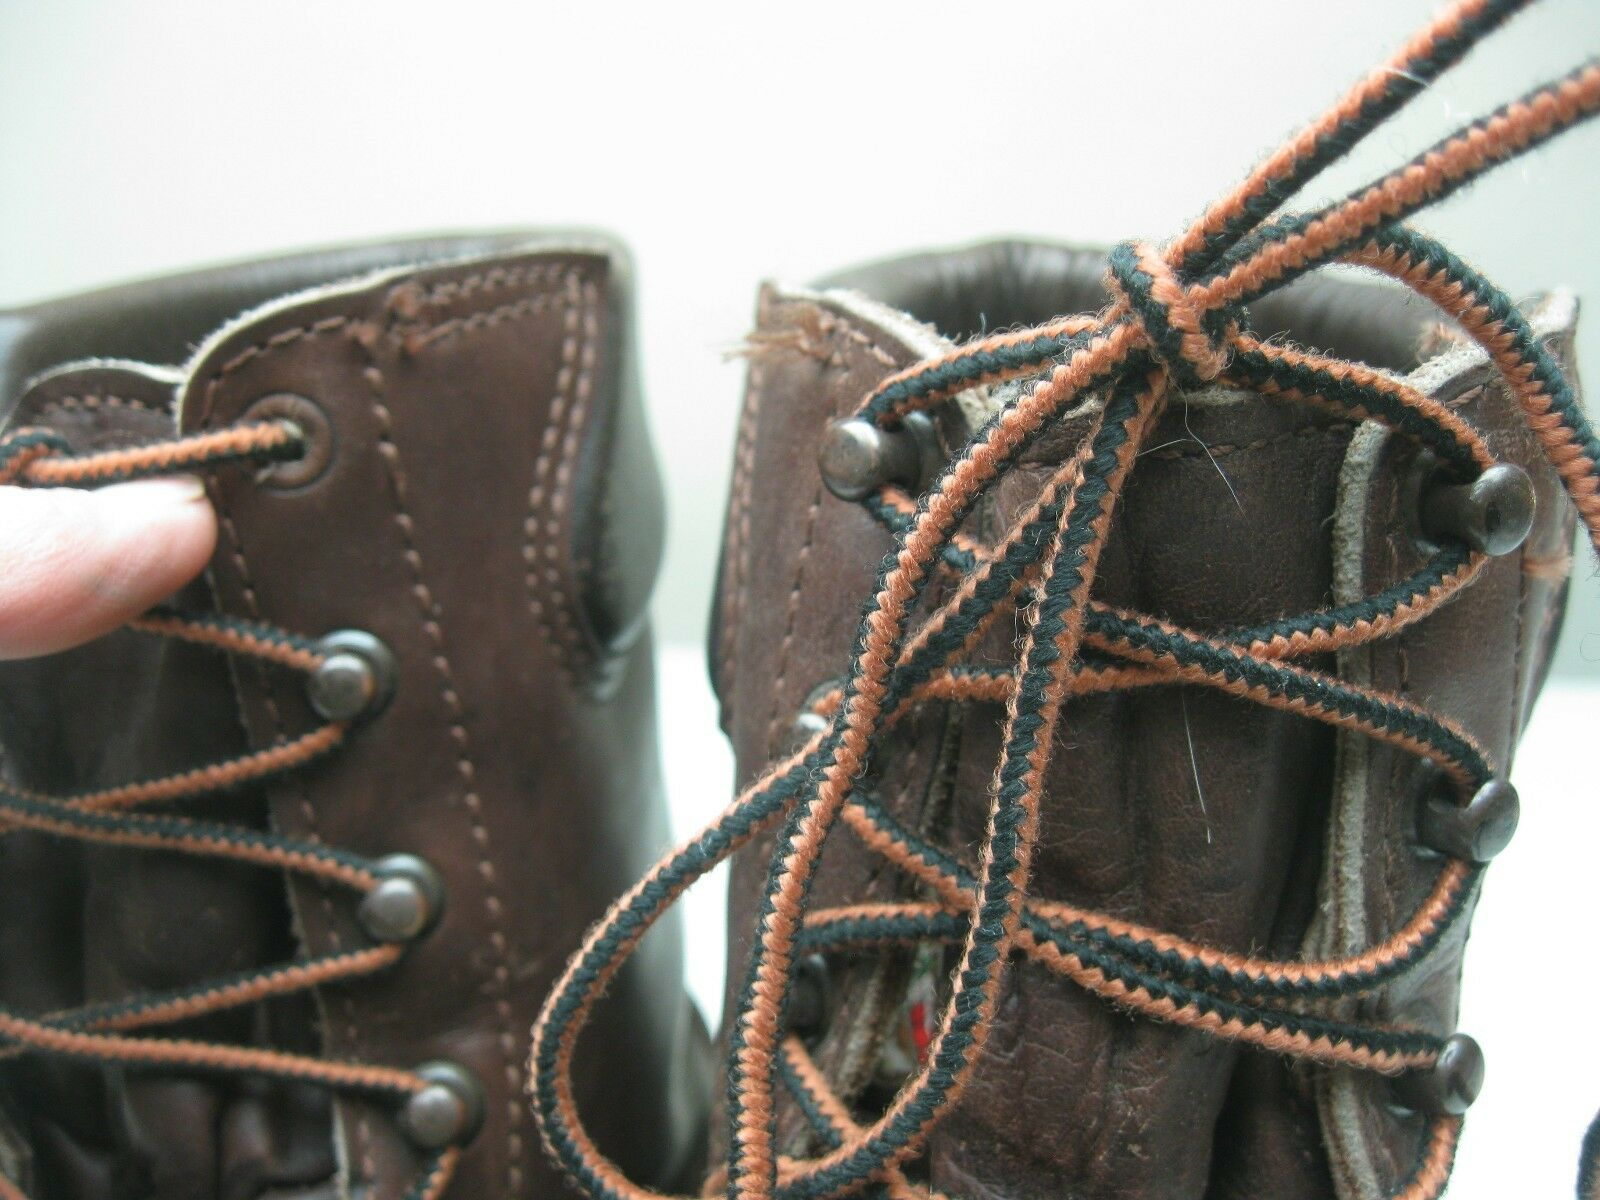 DANNERDISTRESSED BROWN 800 GRAM PACKER INSULATED MADE IN  A PACKER GRAM BOOTS size 8 EE